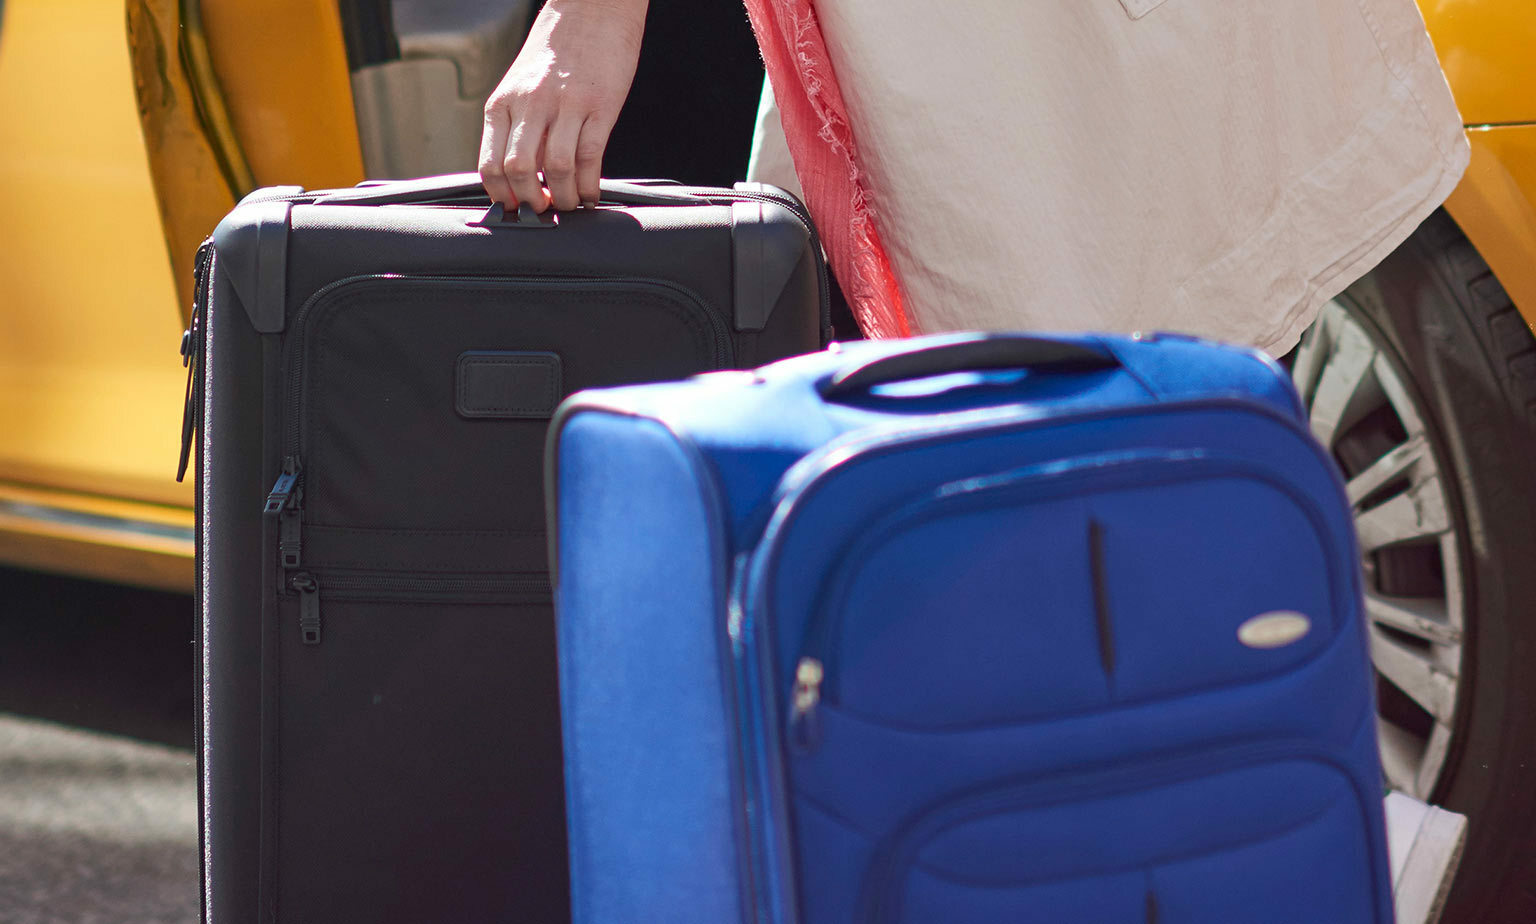 Top Luggage Brands Up To 60% Off